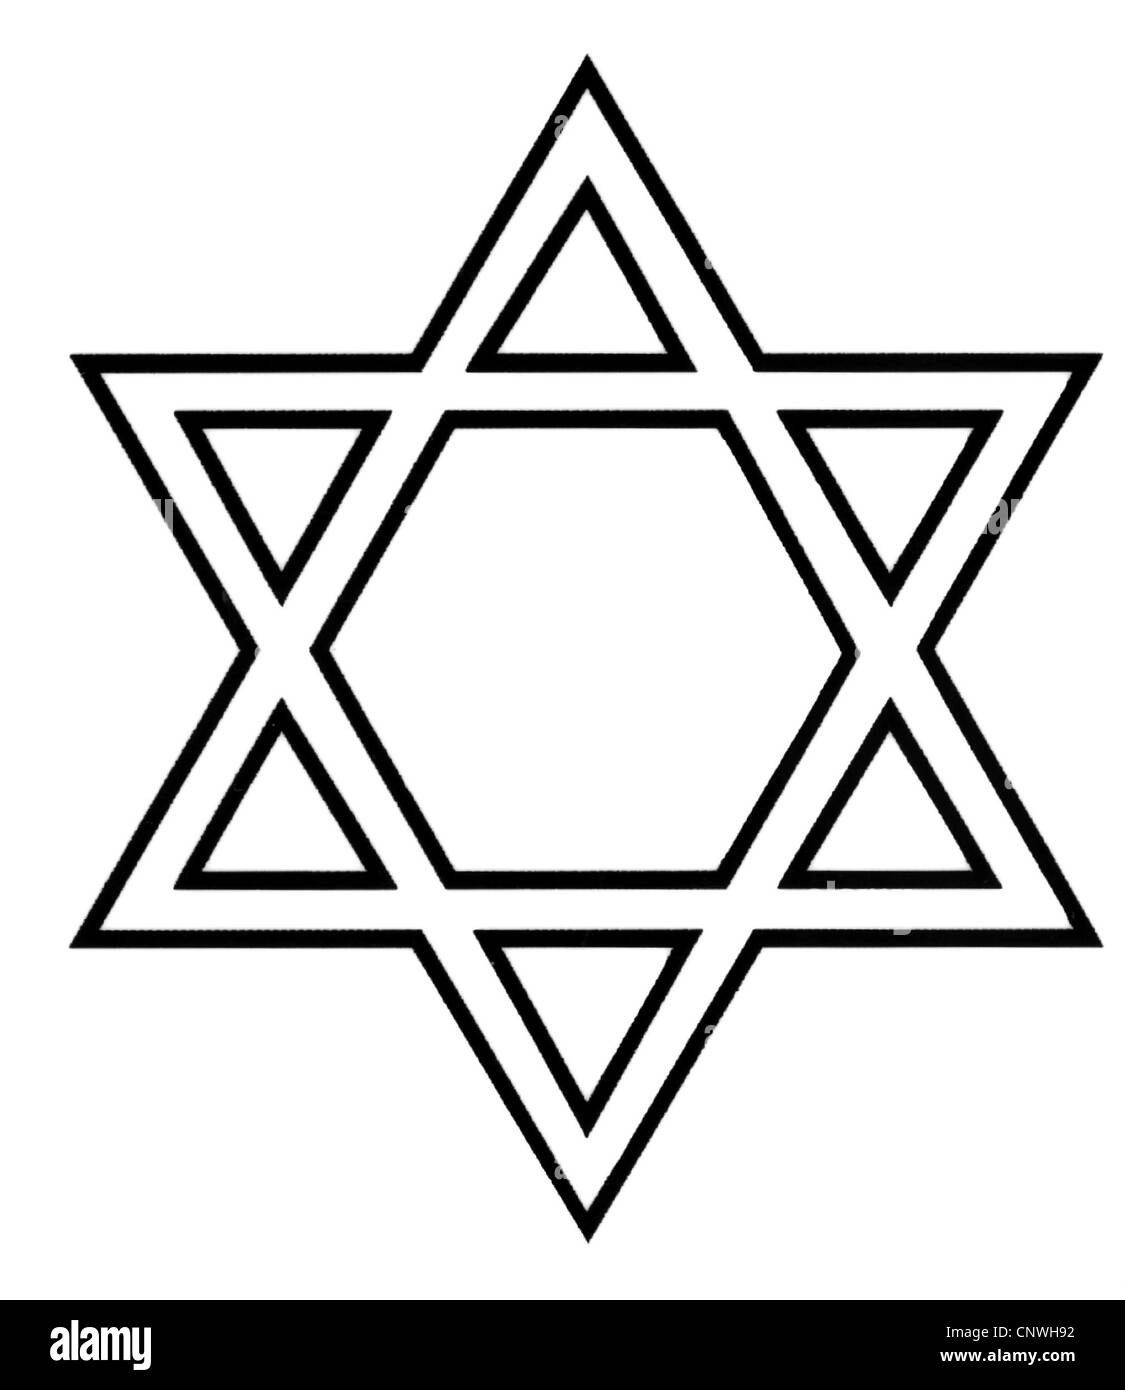 Symbols star of david computer graphics jews judaism jewry symbols star of david computer graphics jews judaism jewry symbol shield of david magen david buycottarizona